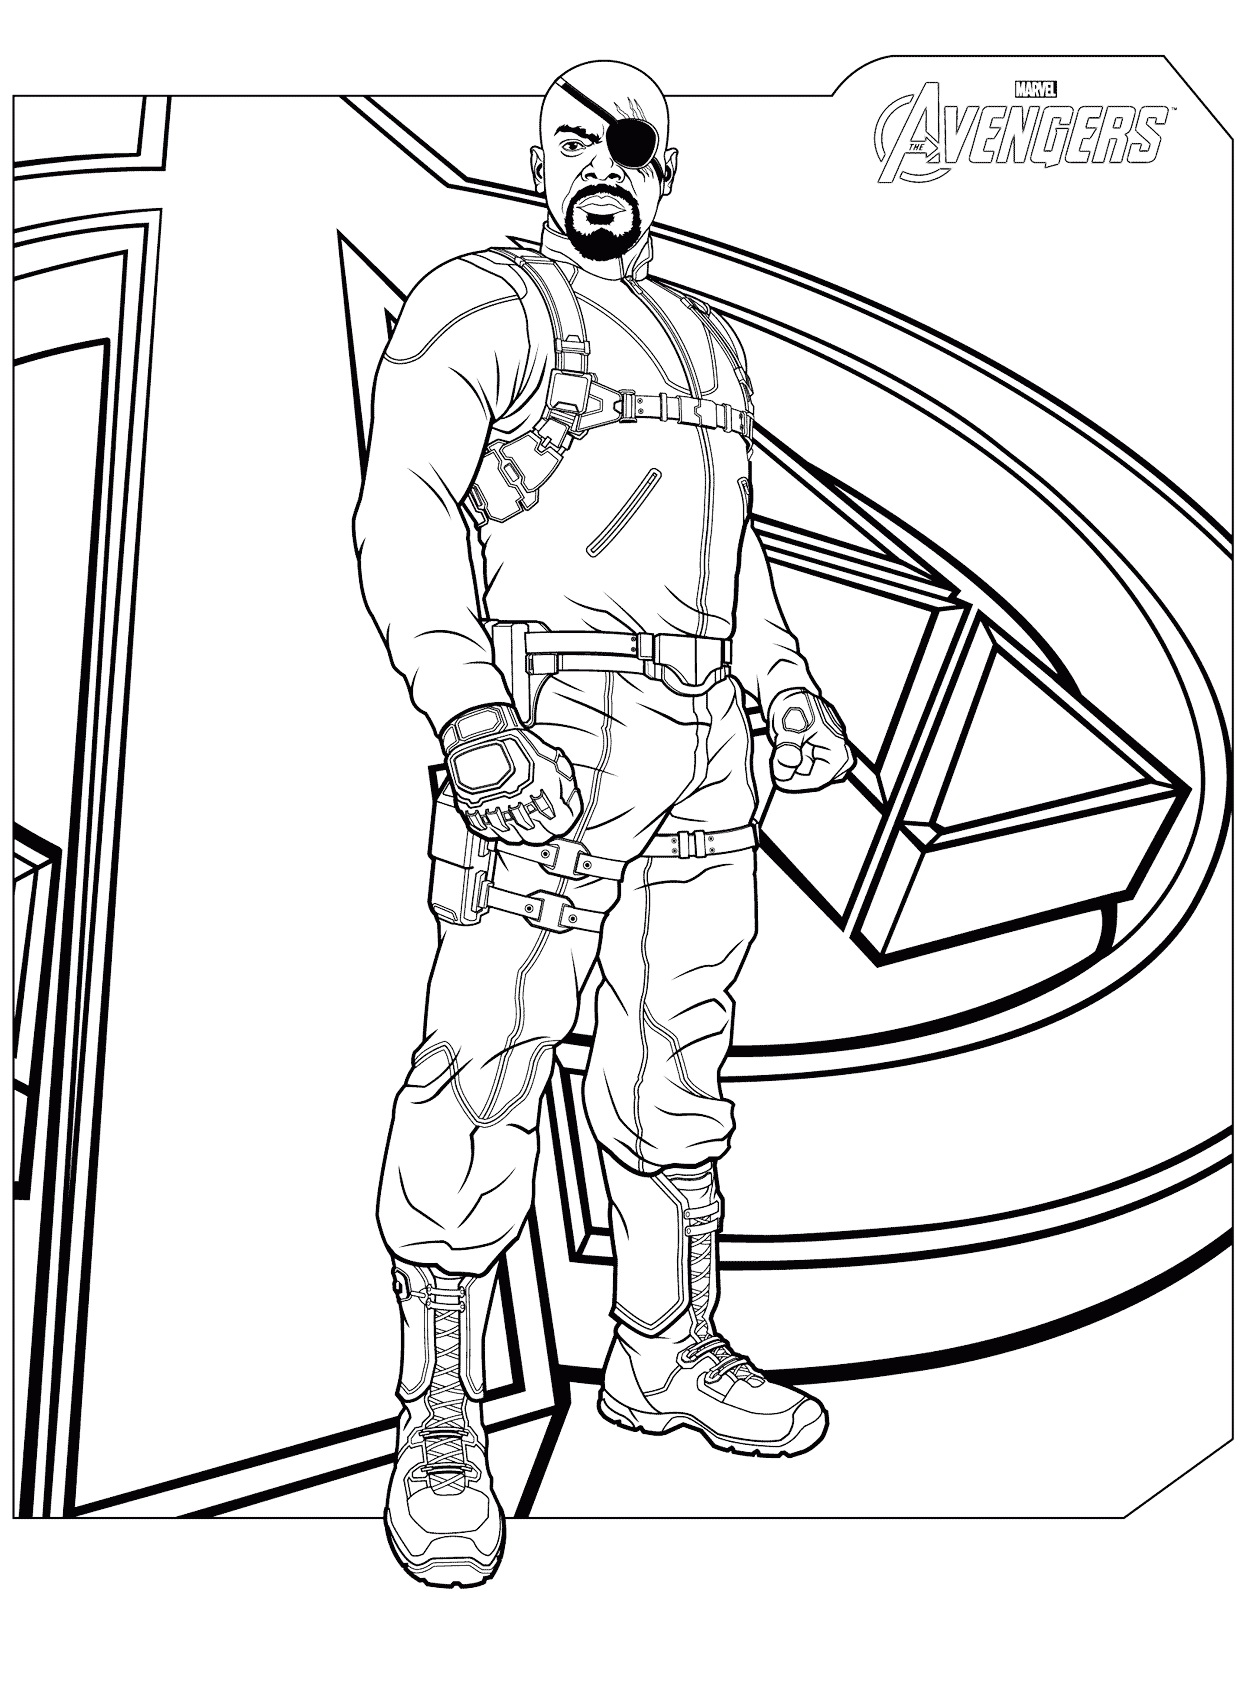 Superhero Hulk Breaking The Walls Coloring Page Free Coloring